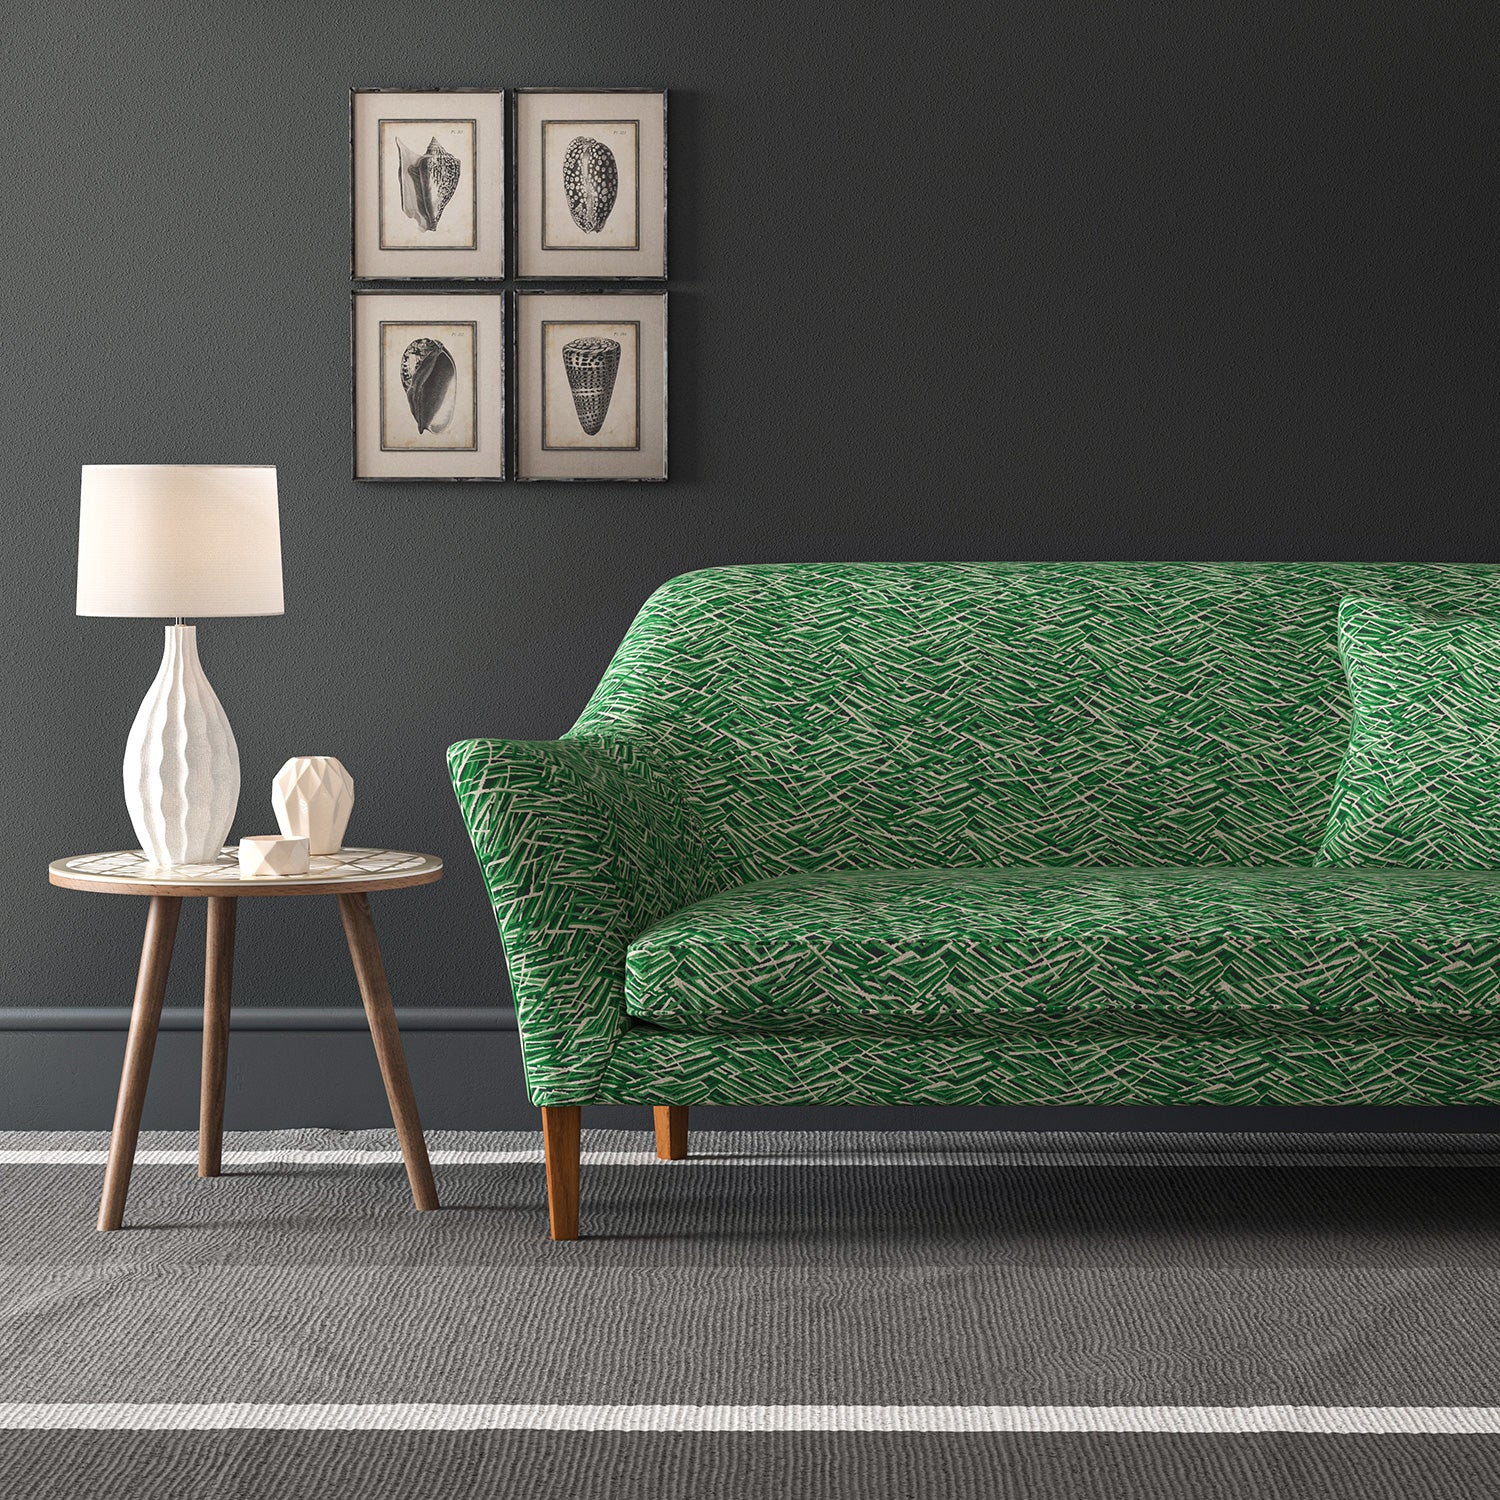 Velvet sofa in a green velvet sofa with stain resistant finish and abstract design